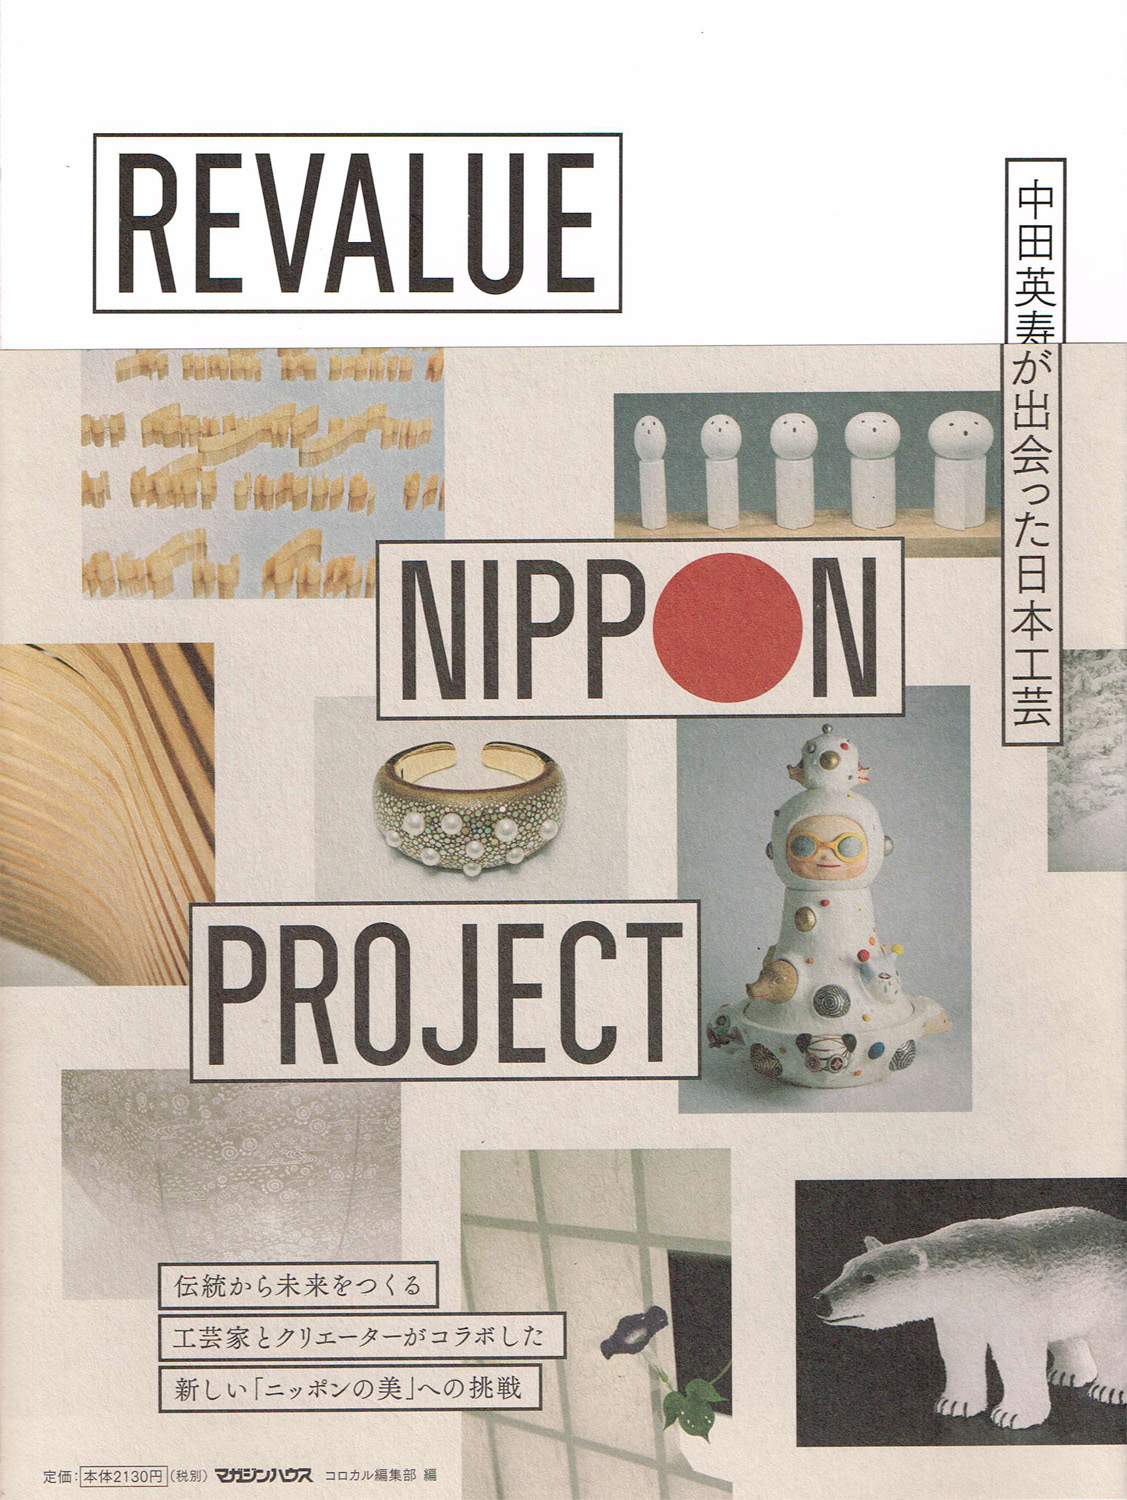 REVALUE NIPPON PROJECT